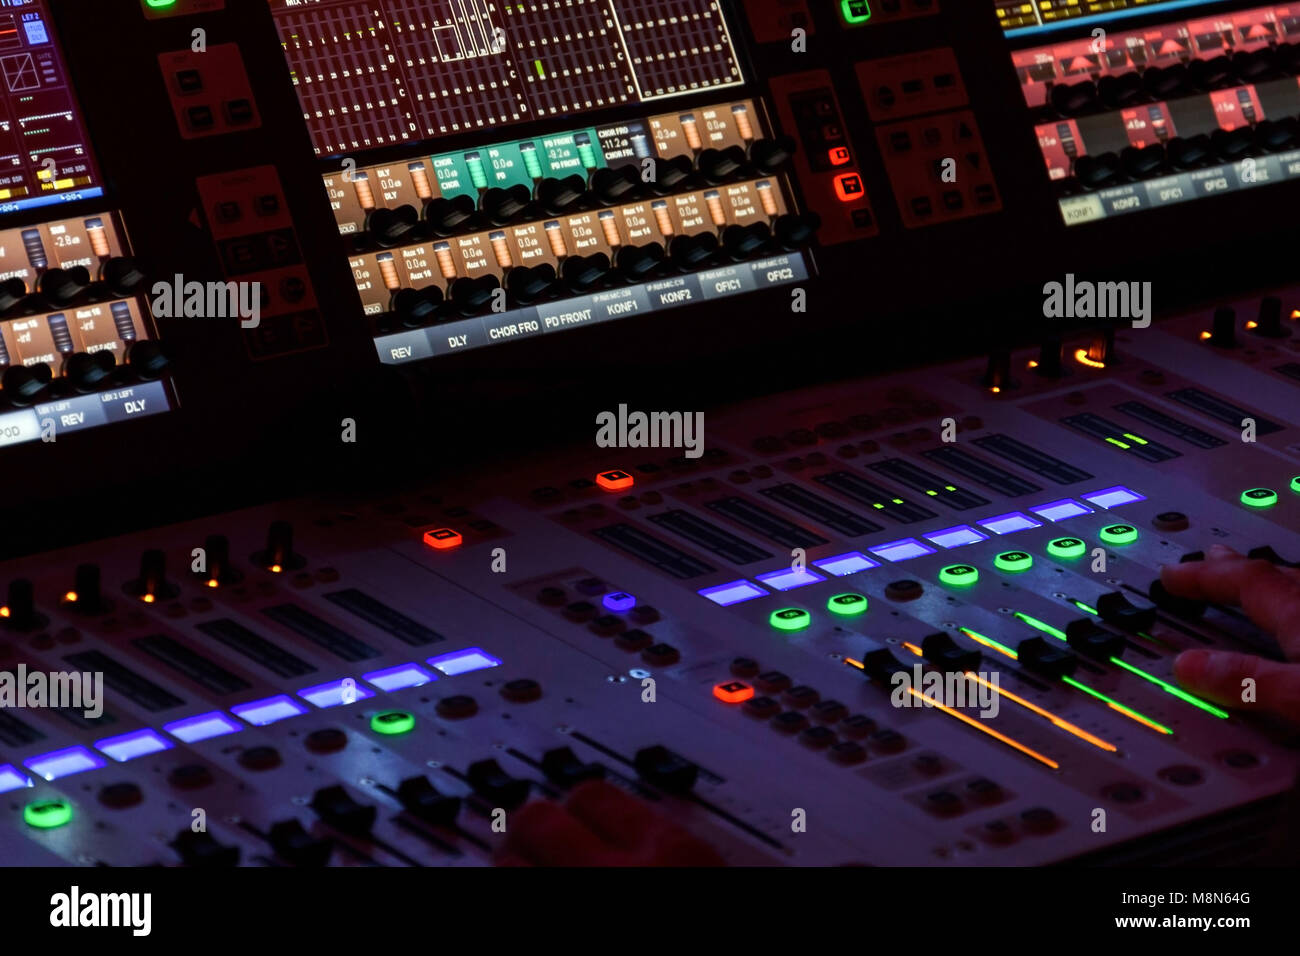 Director working on the video or sound mixing console in the studio - Stock Image